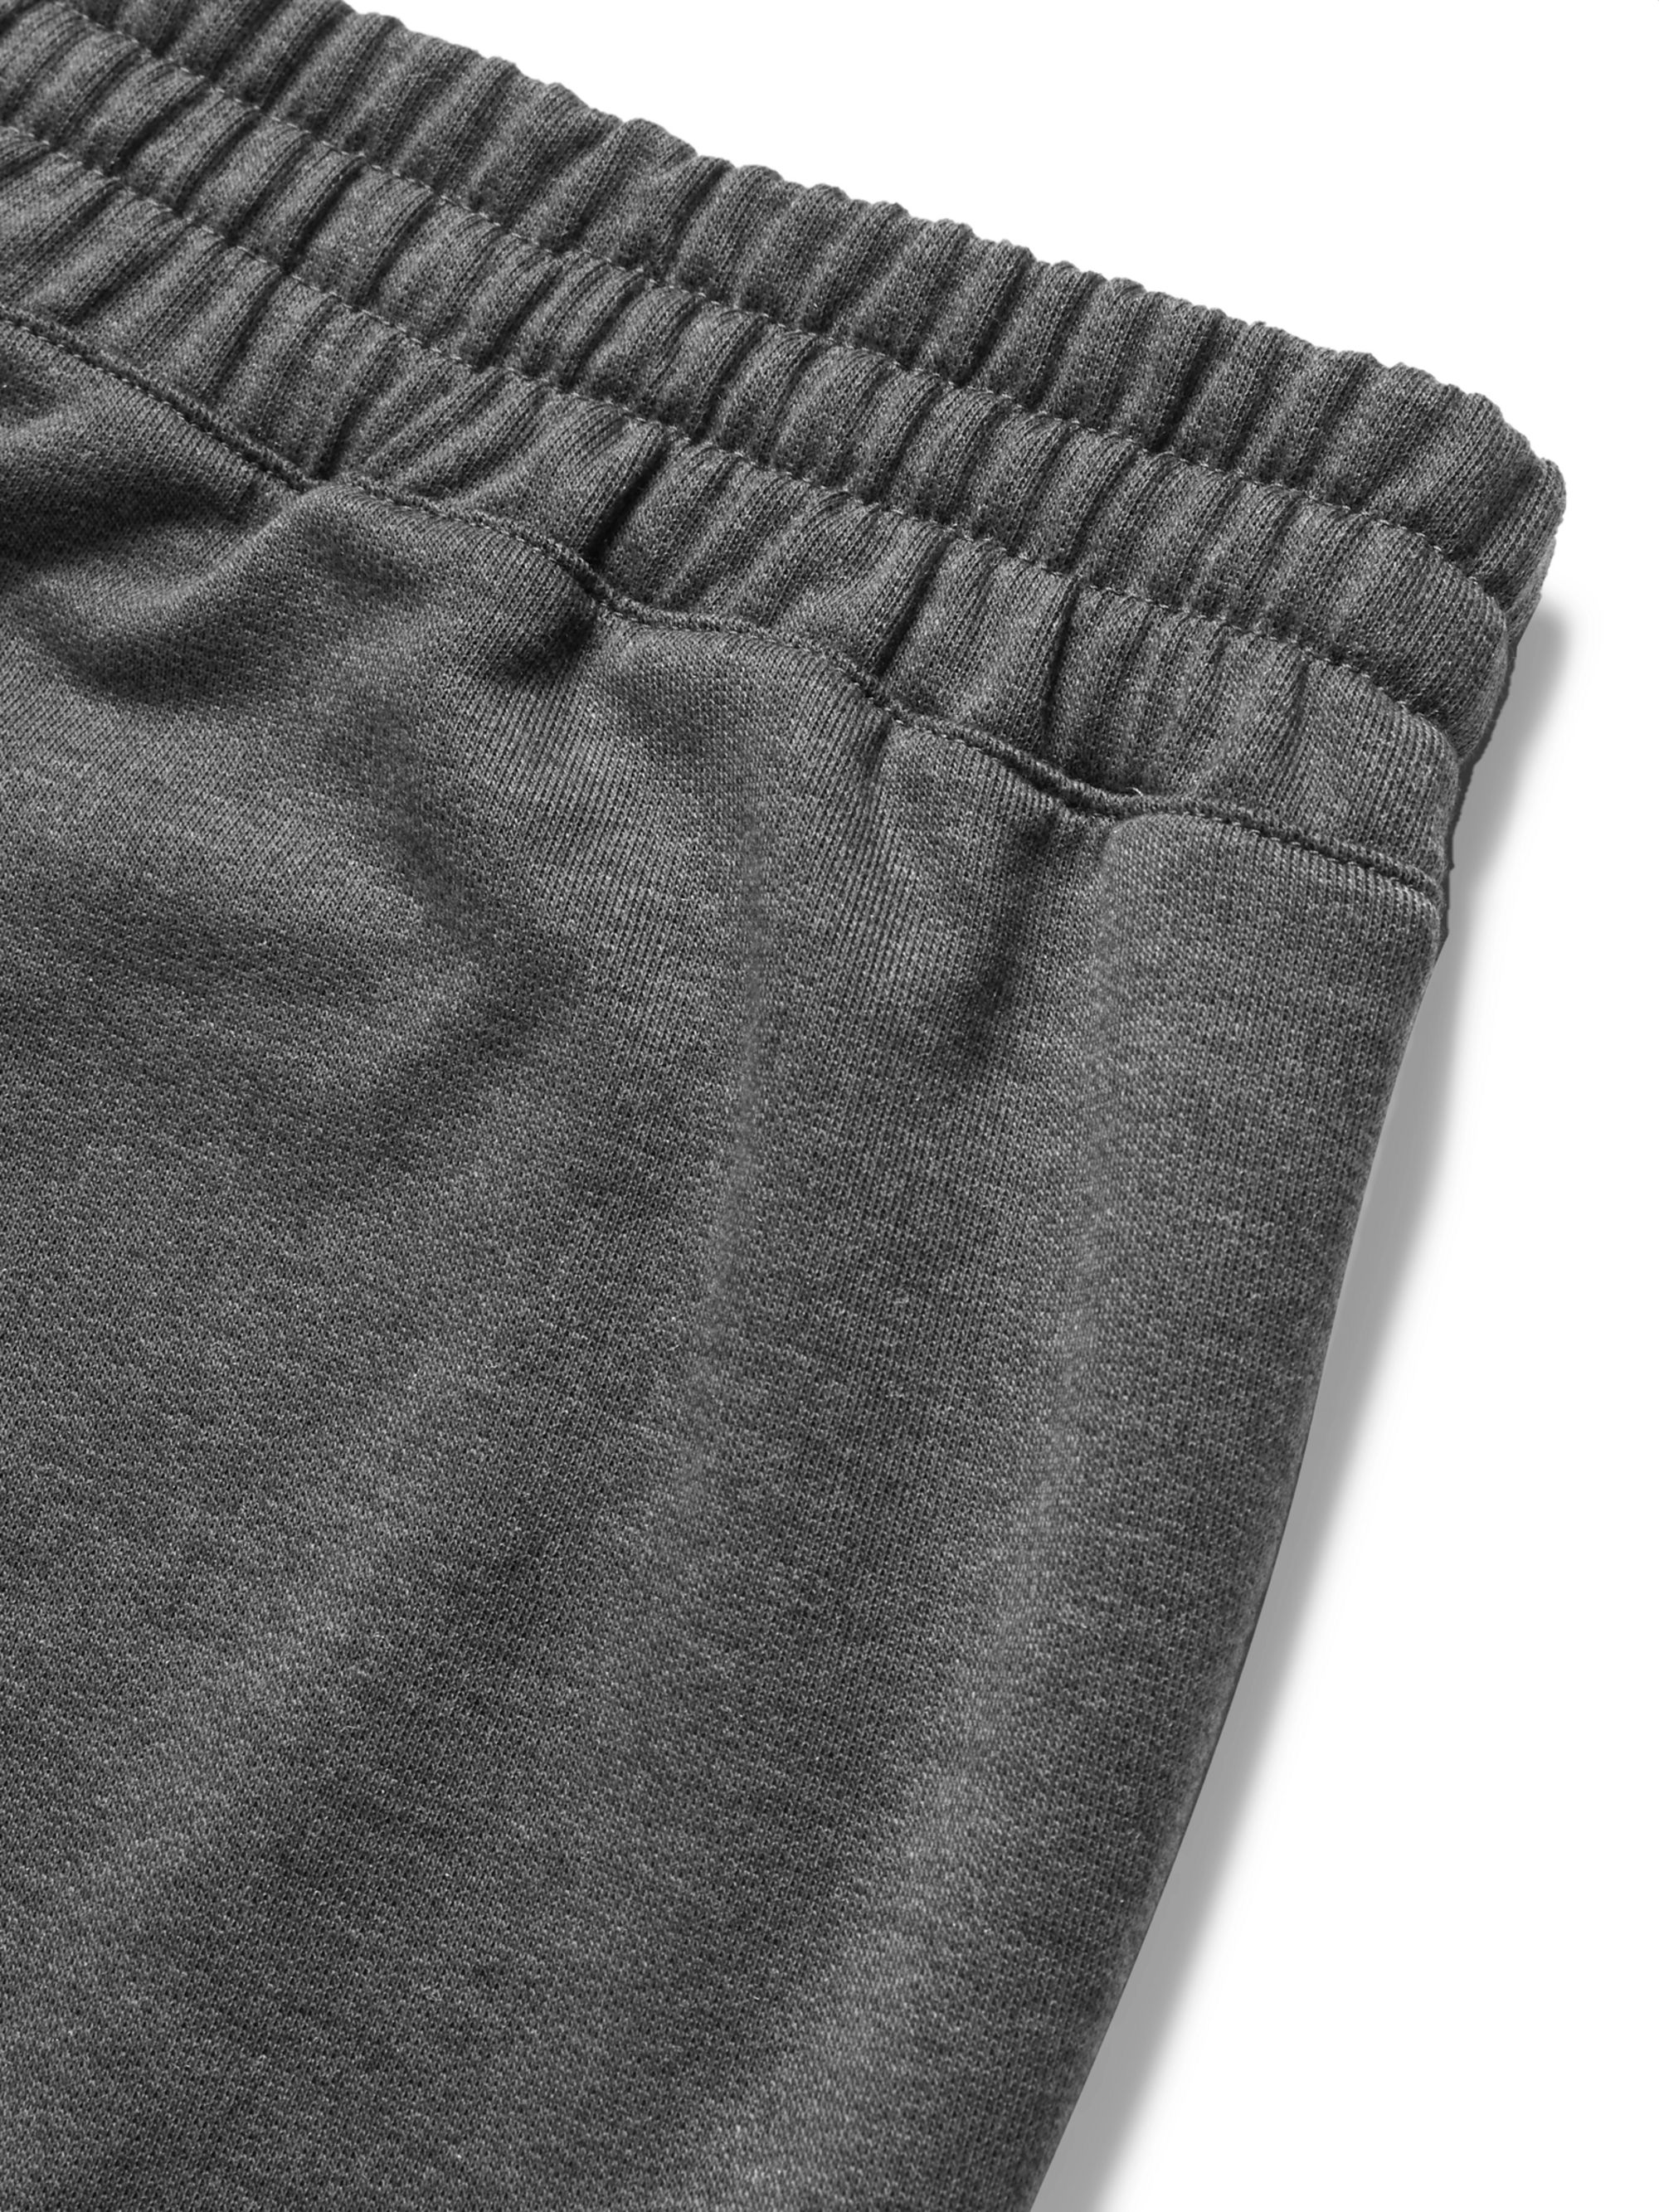 On Slim-Fit Tapered Panelled Tech-Jersey Sweatpants